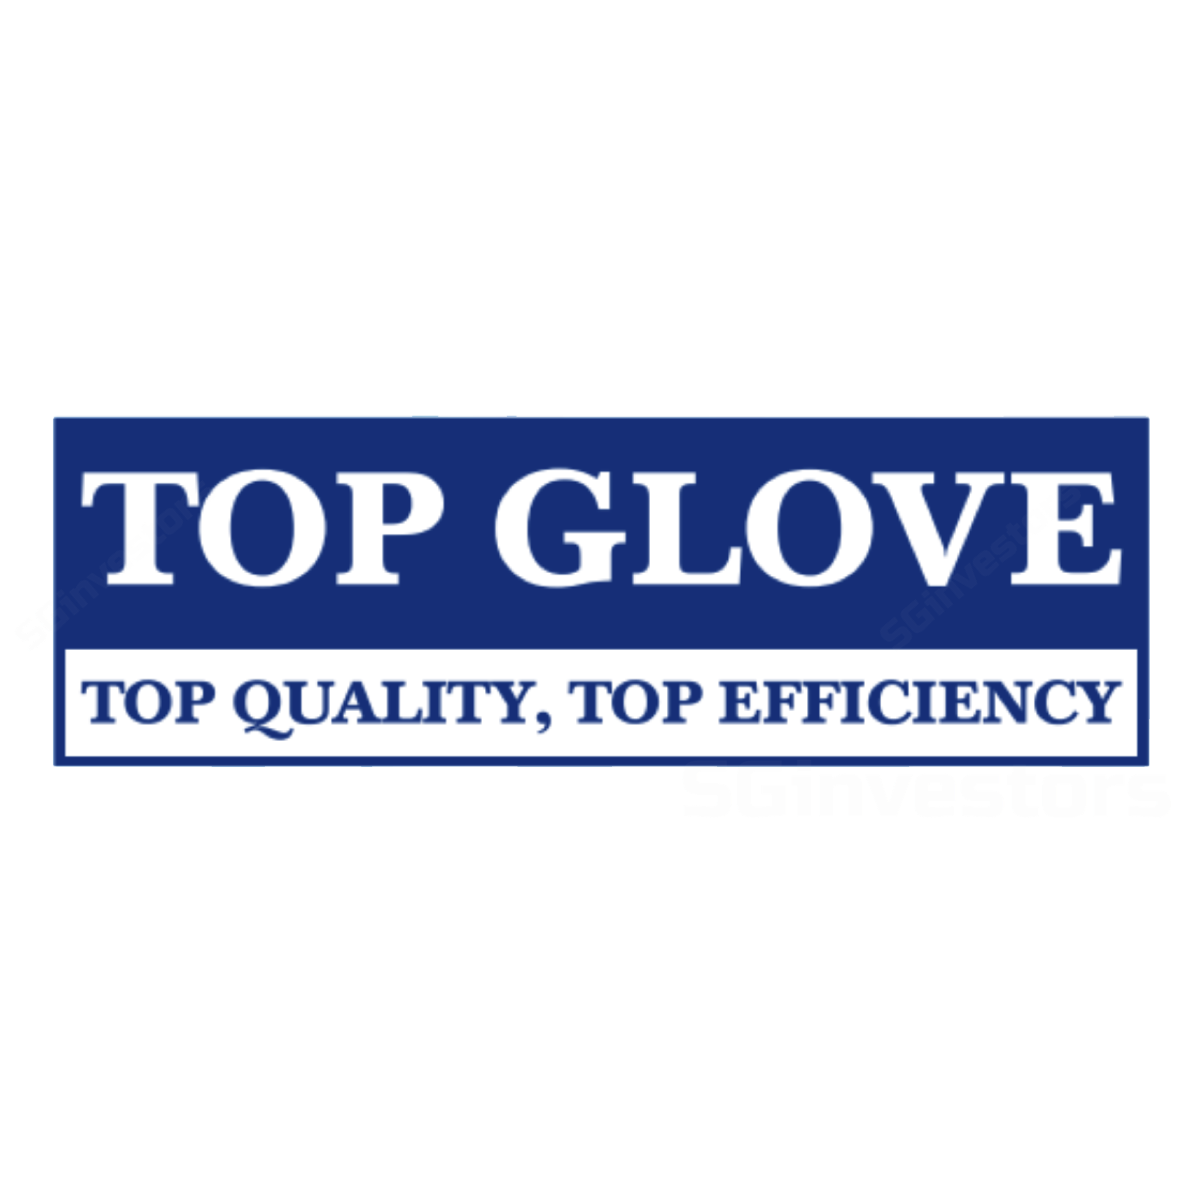 Top Glove (TOPG MK) - Maybank Kim Eng 2018-02-02: Priced-in Acquisition Of Aspion